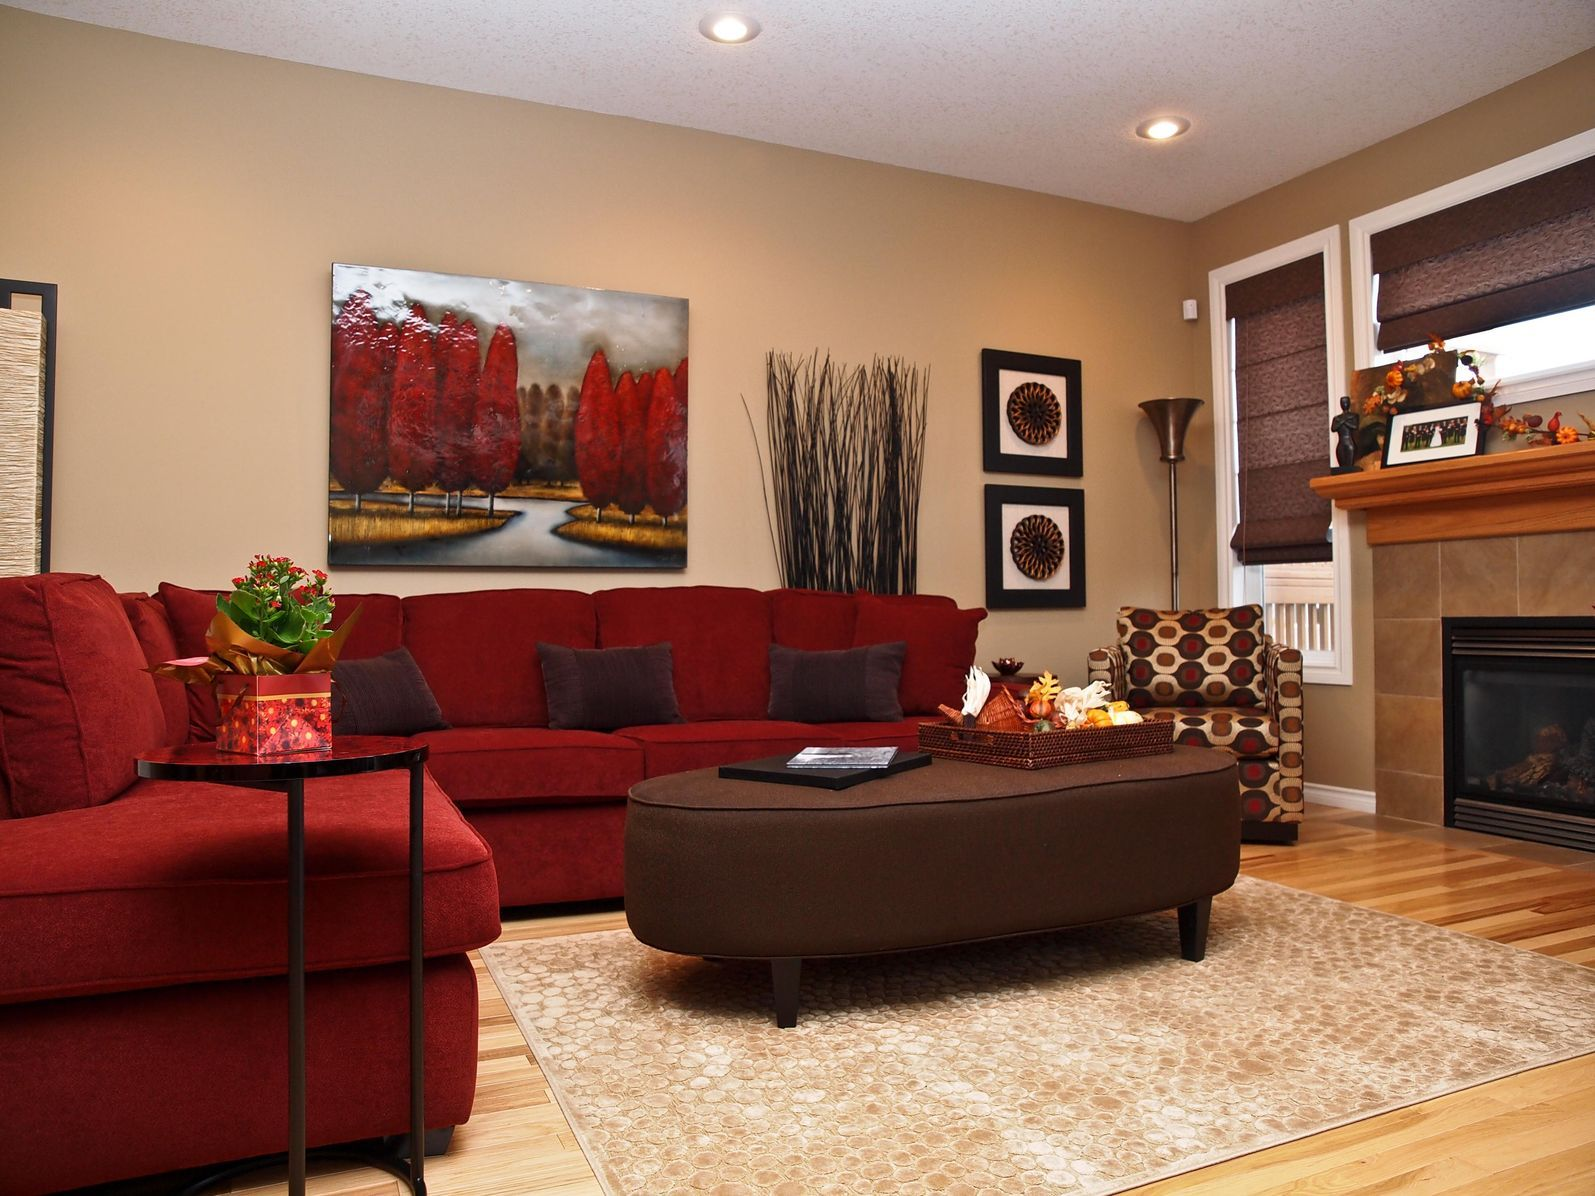 Inspiration To Get Living Room Red Sofa Ideas Image